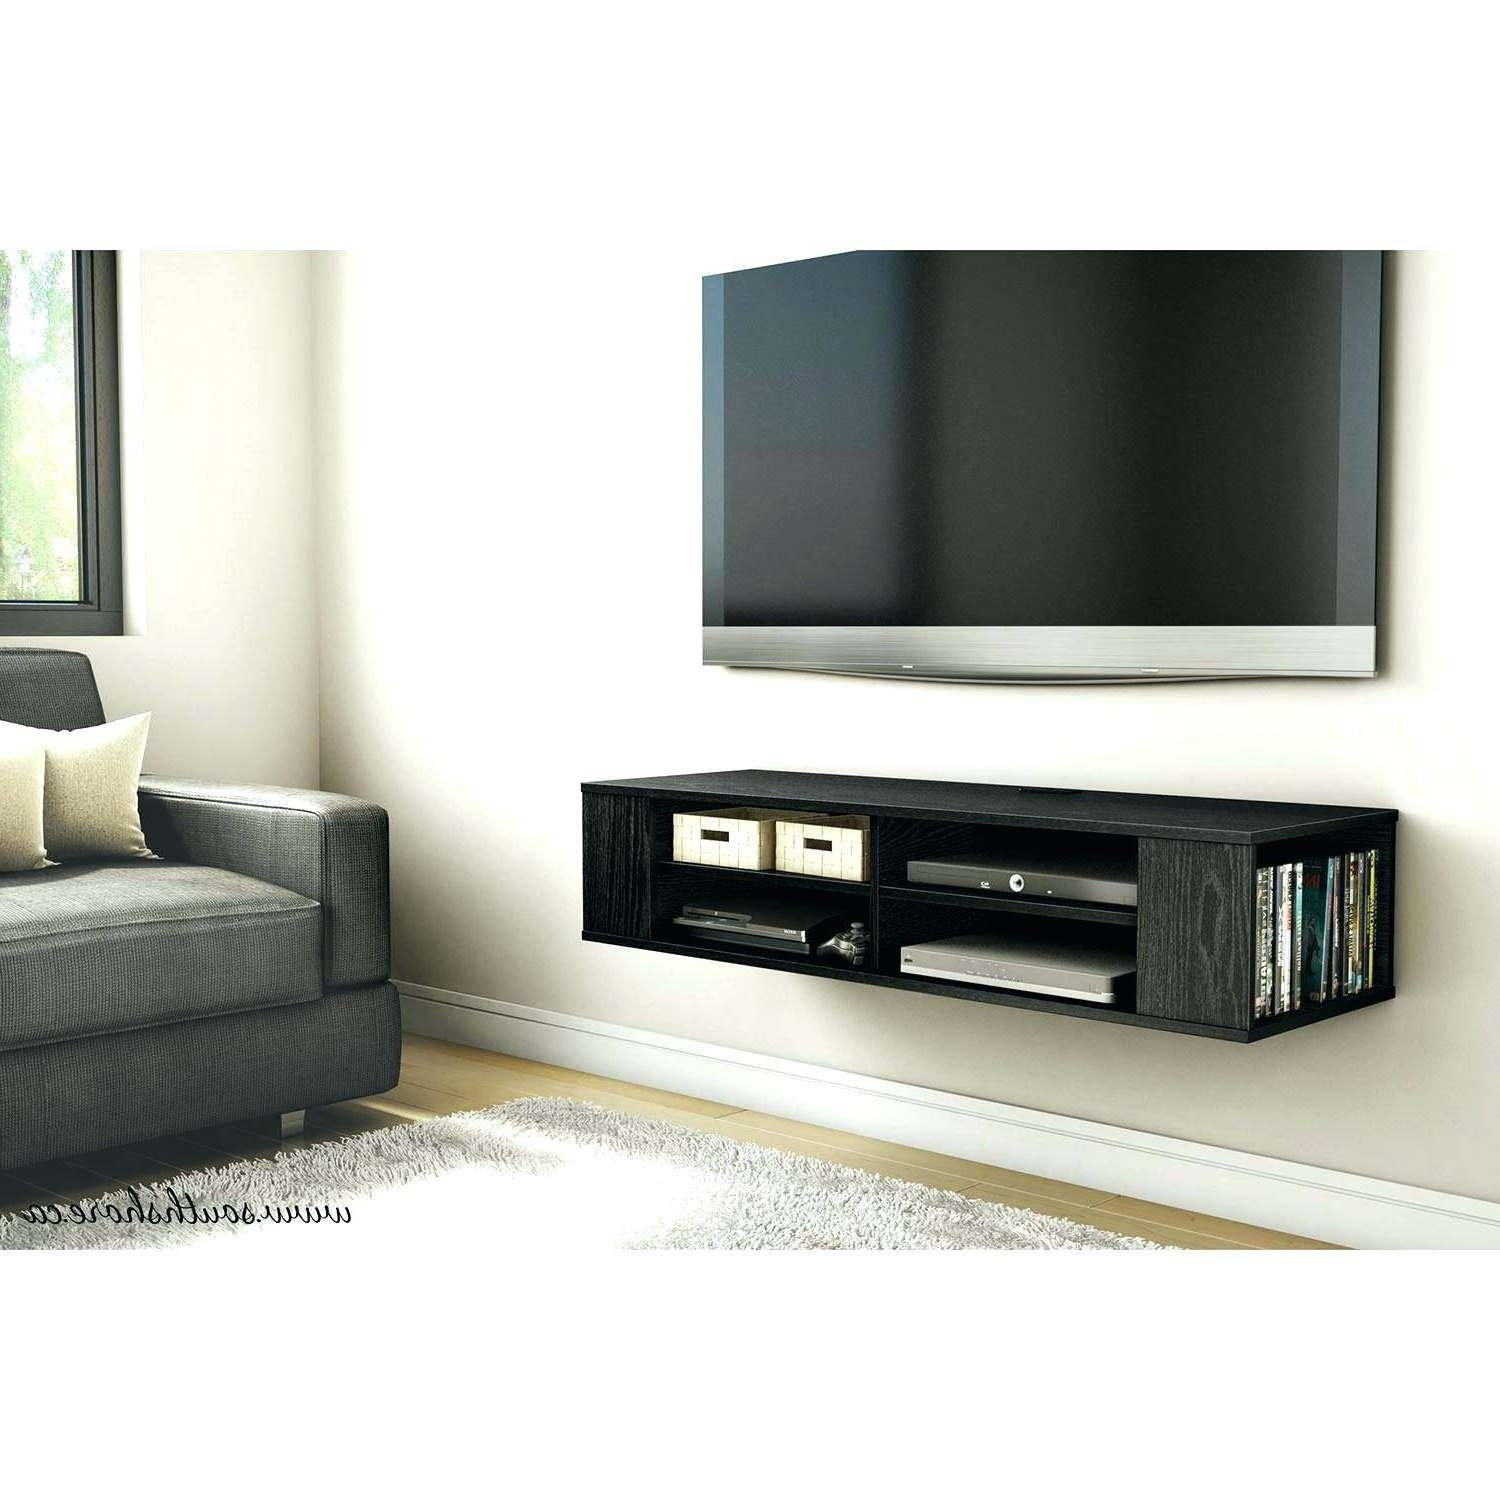 Tv Stand : Nexera Tv Stand Manual Nexera Tv Stand (View 15 of 15)